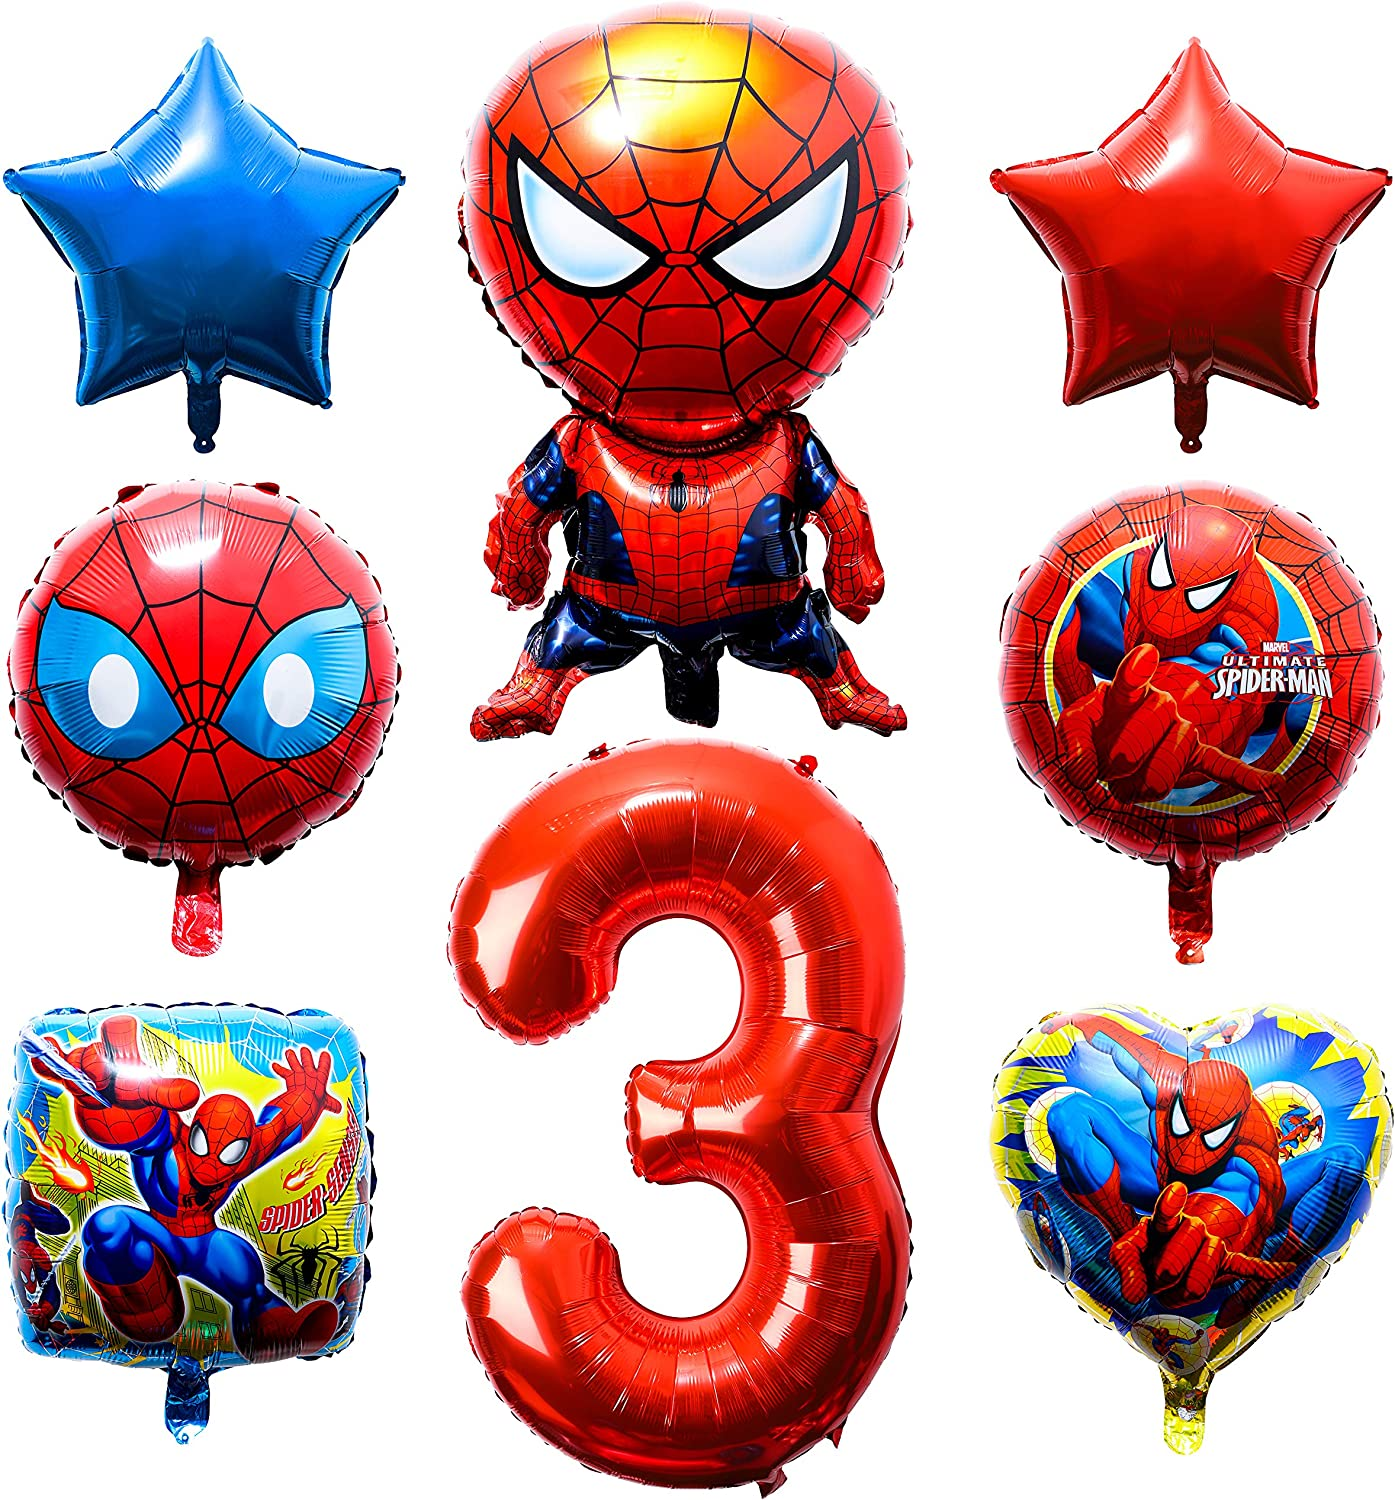 30PCS Super/Hero/Panther Foil Balloons Party Balloons Super/Hero/Panther Themed Birthday Party Decorations Panther Party Supplies Party Favors for Super Hero Fans Kids